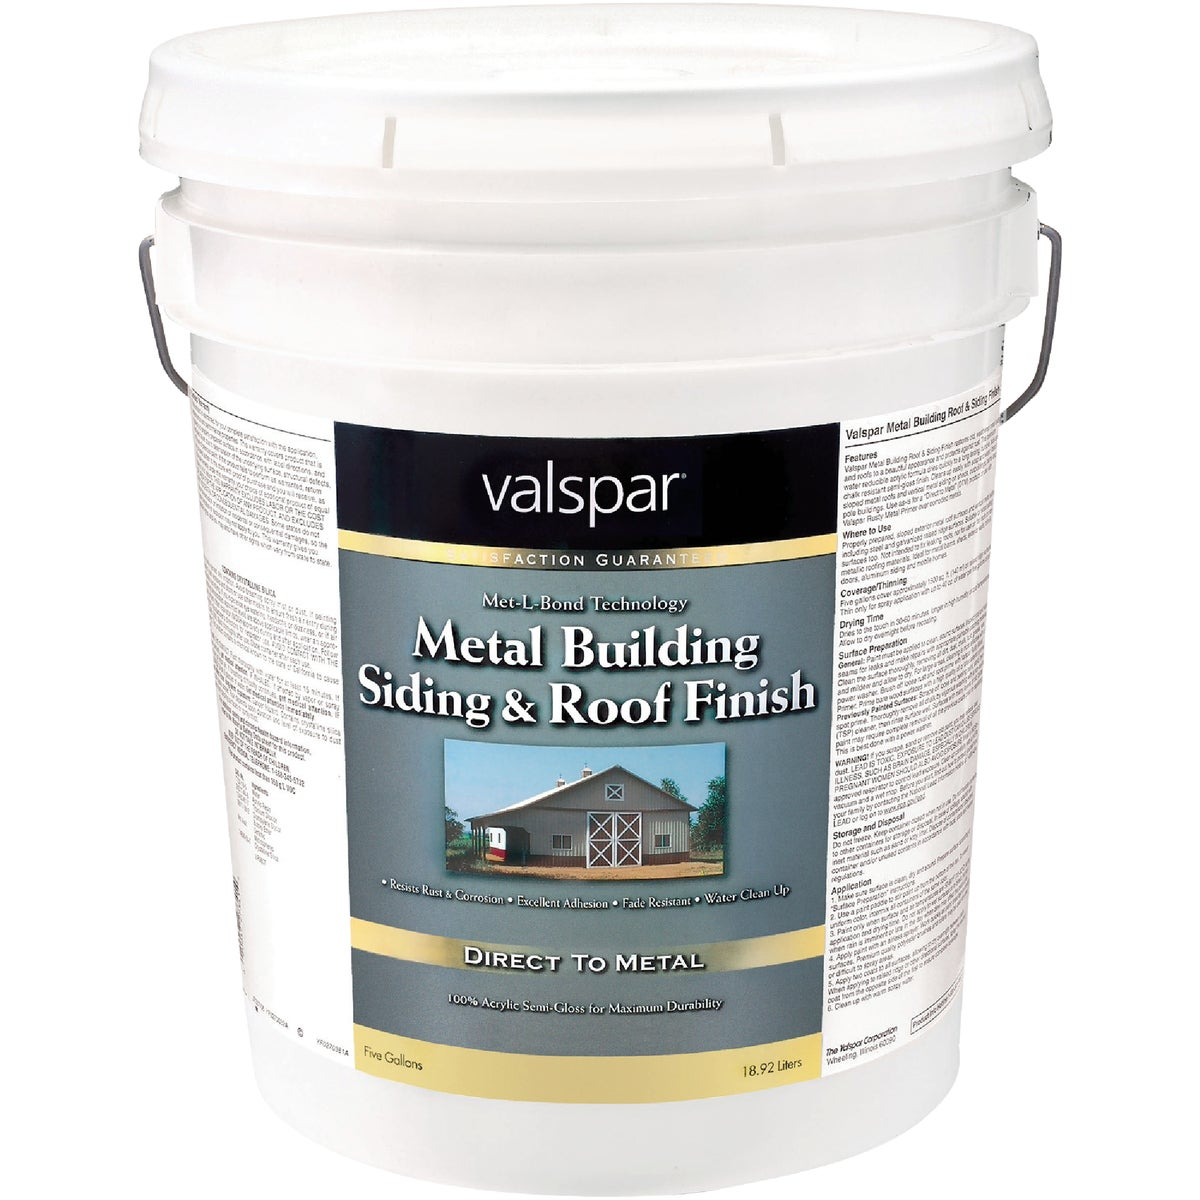 LTX BRT WHITE ROOF PAINT - 027.0004260.008 by Valspar Corp